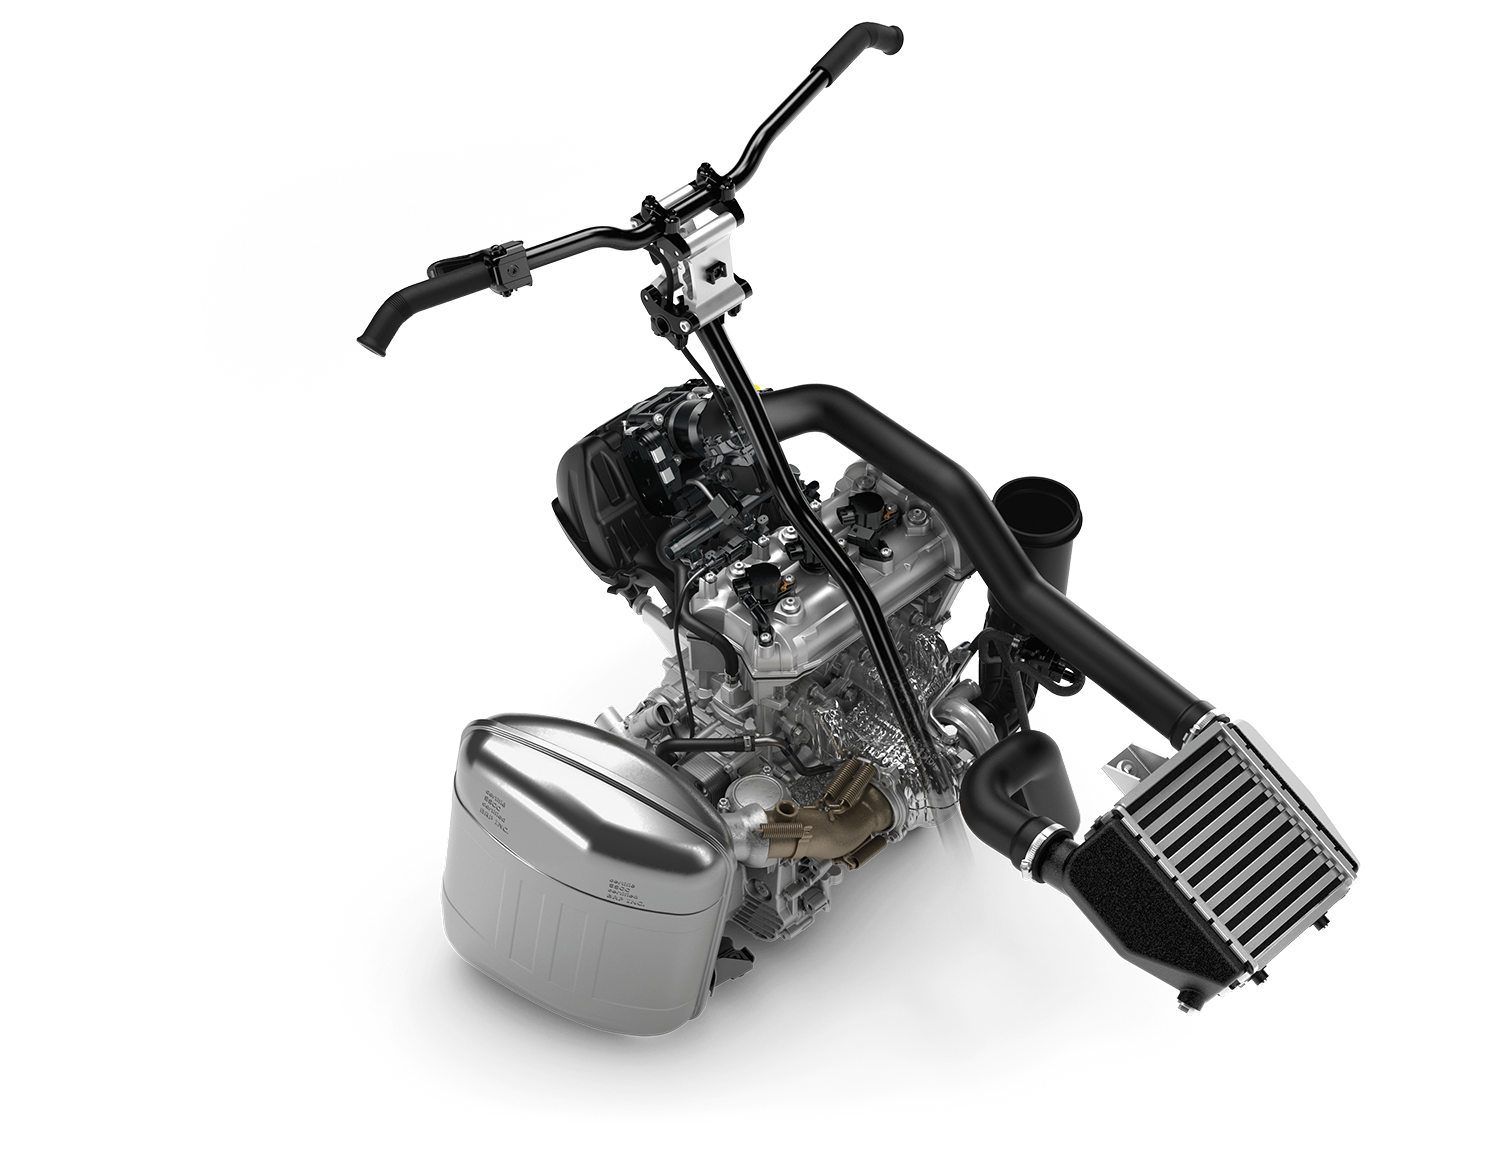 Ultra responsive Rotax engines